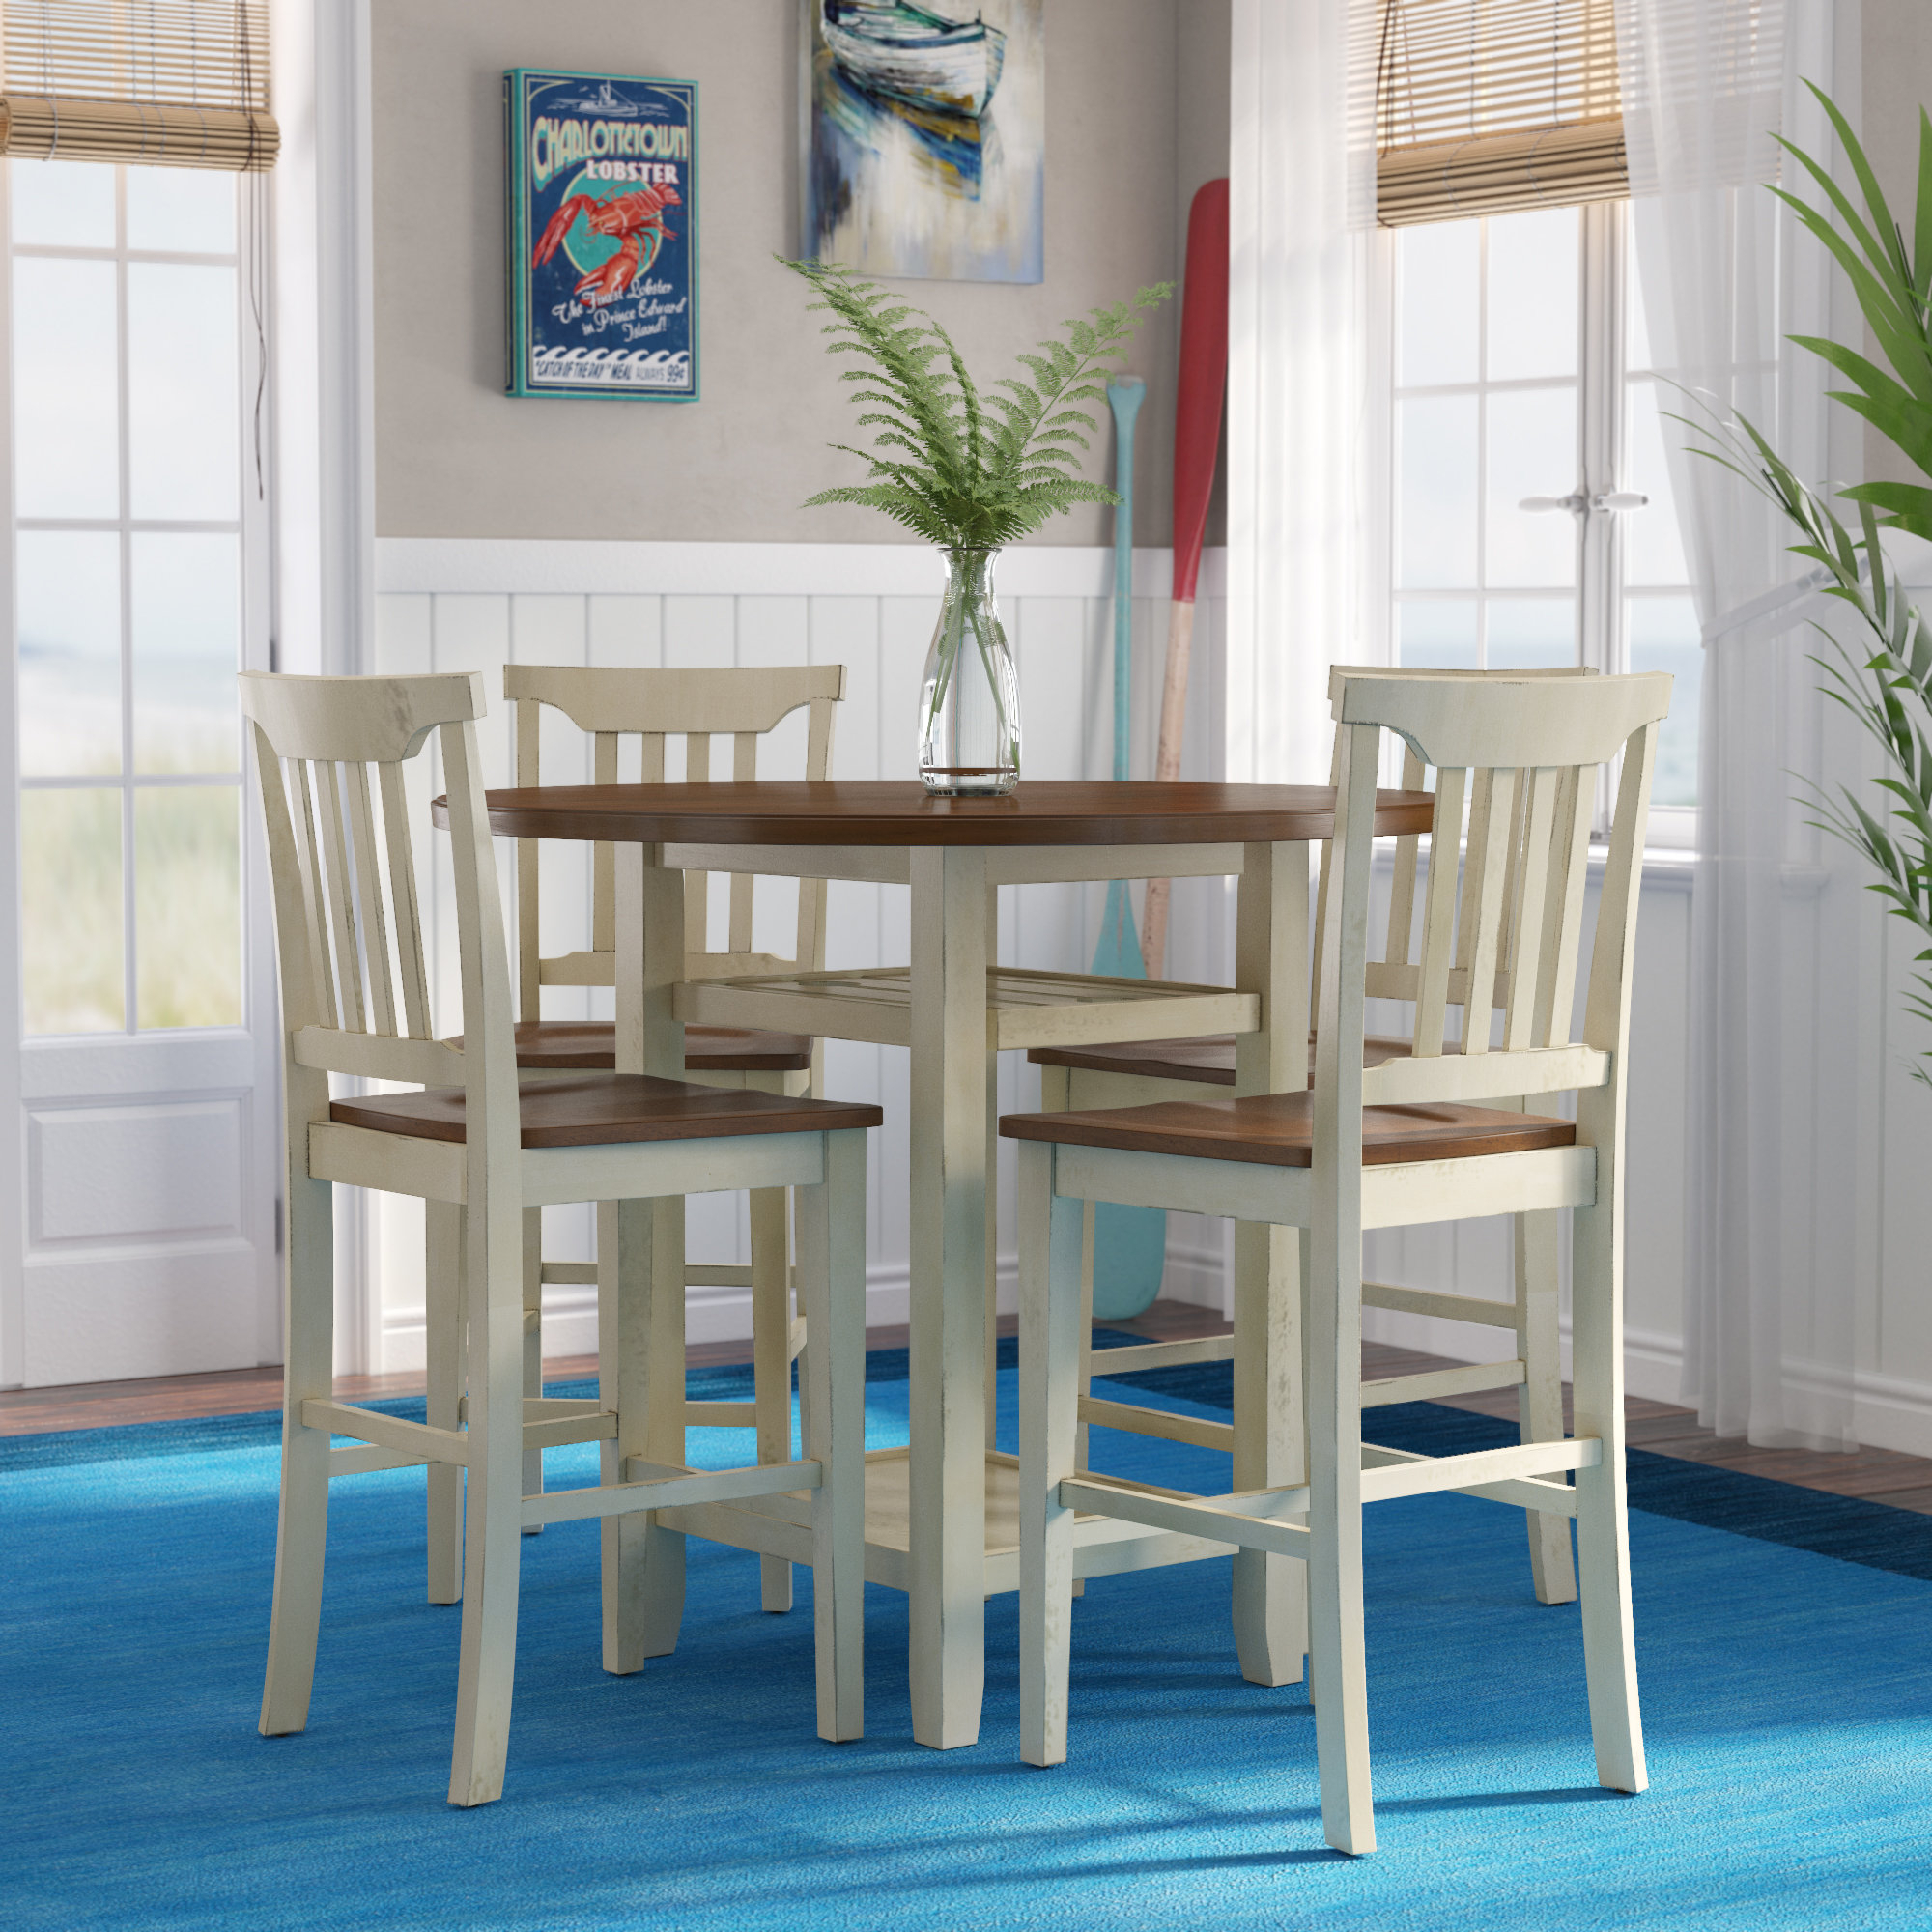 Counter Height Nook Dining Set | Sevenstonesinc Inside Most Up To Date Denzel 5 Piece Counter Height Breakfast Nook Dining Sets (Image 7 of 20)